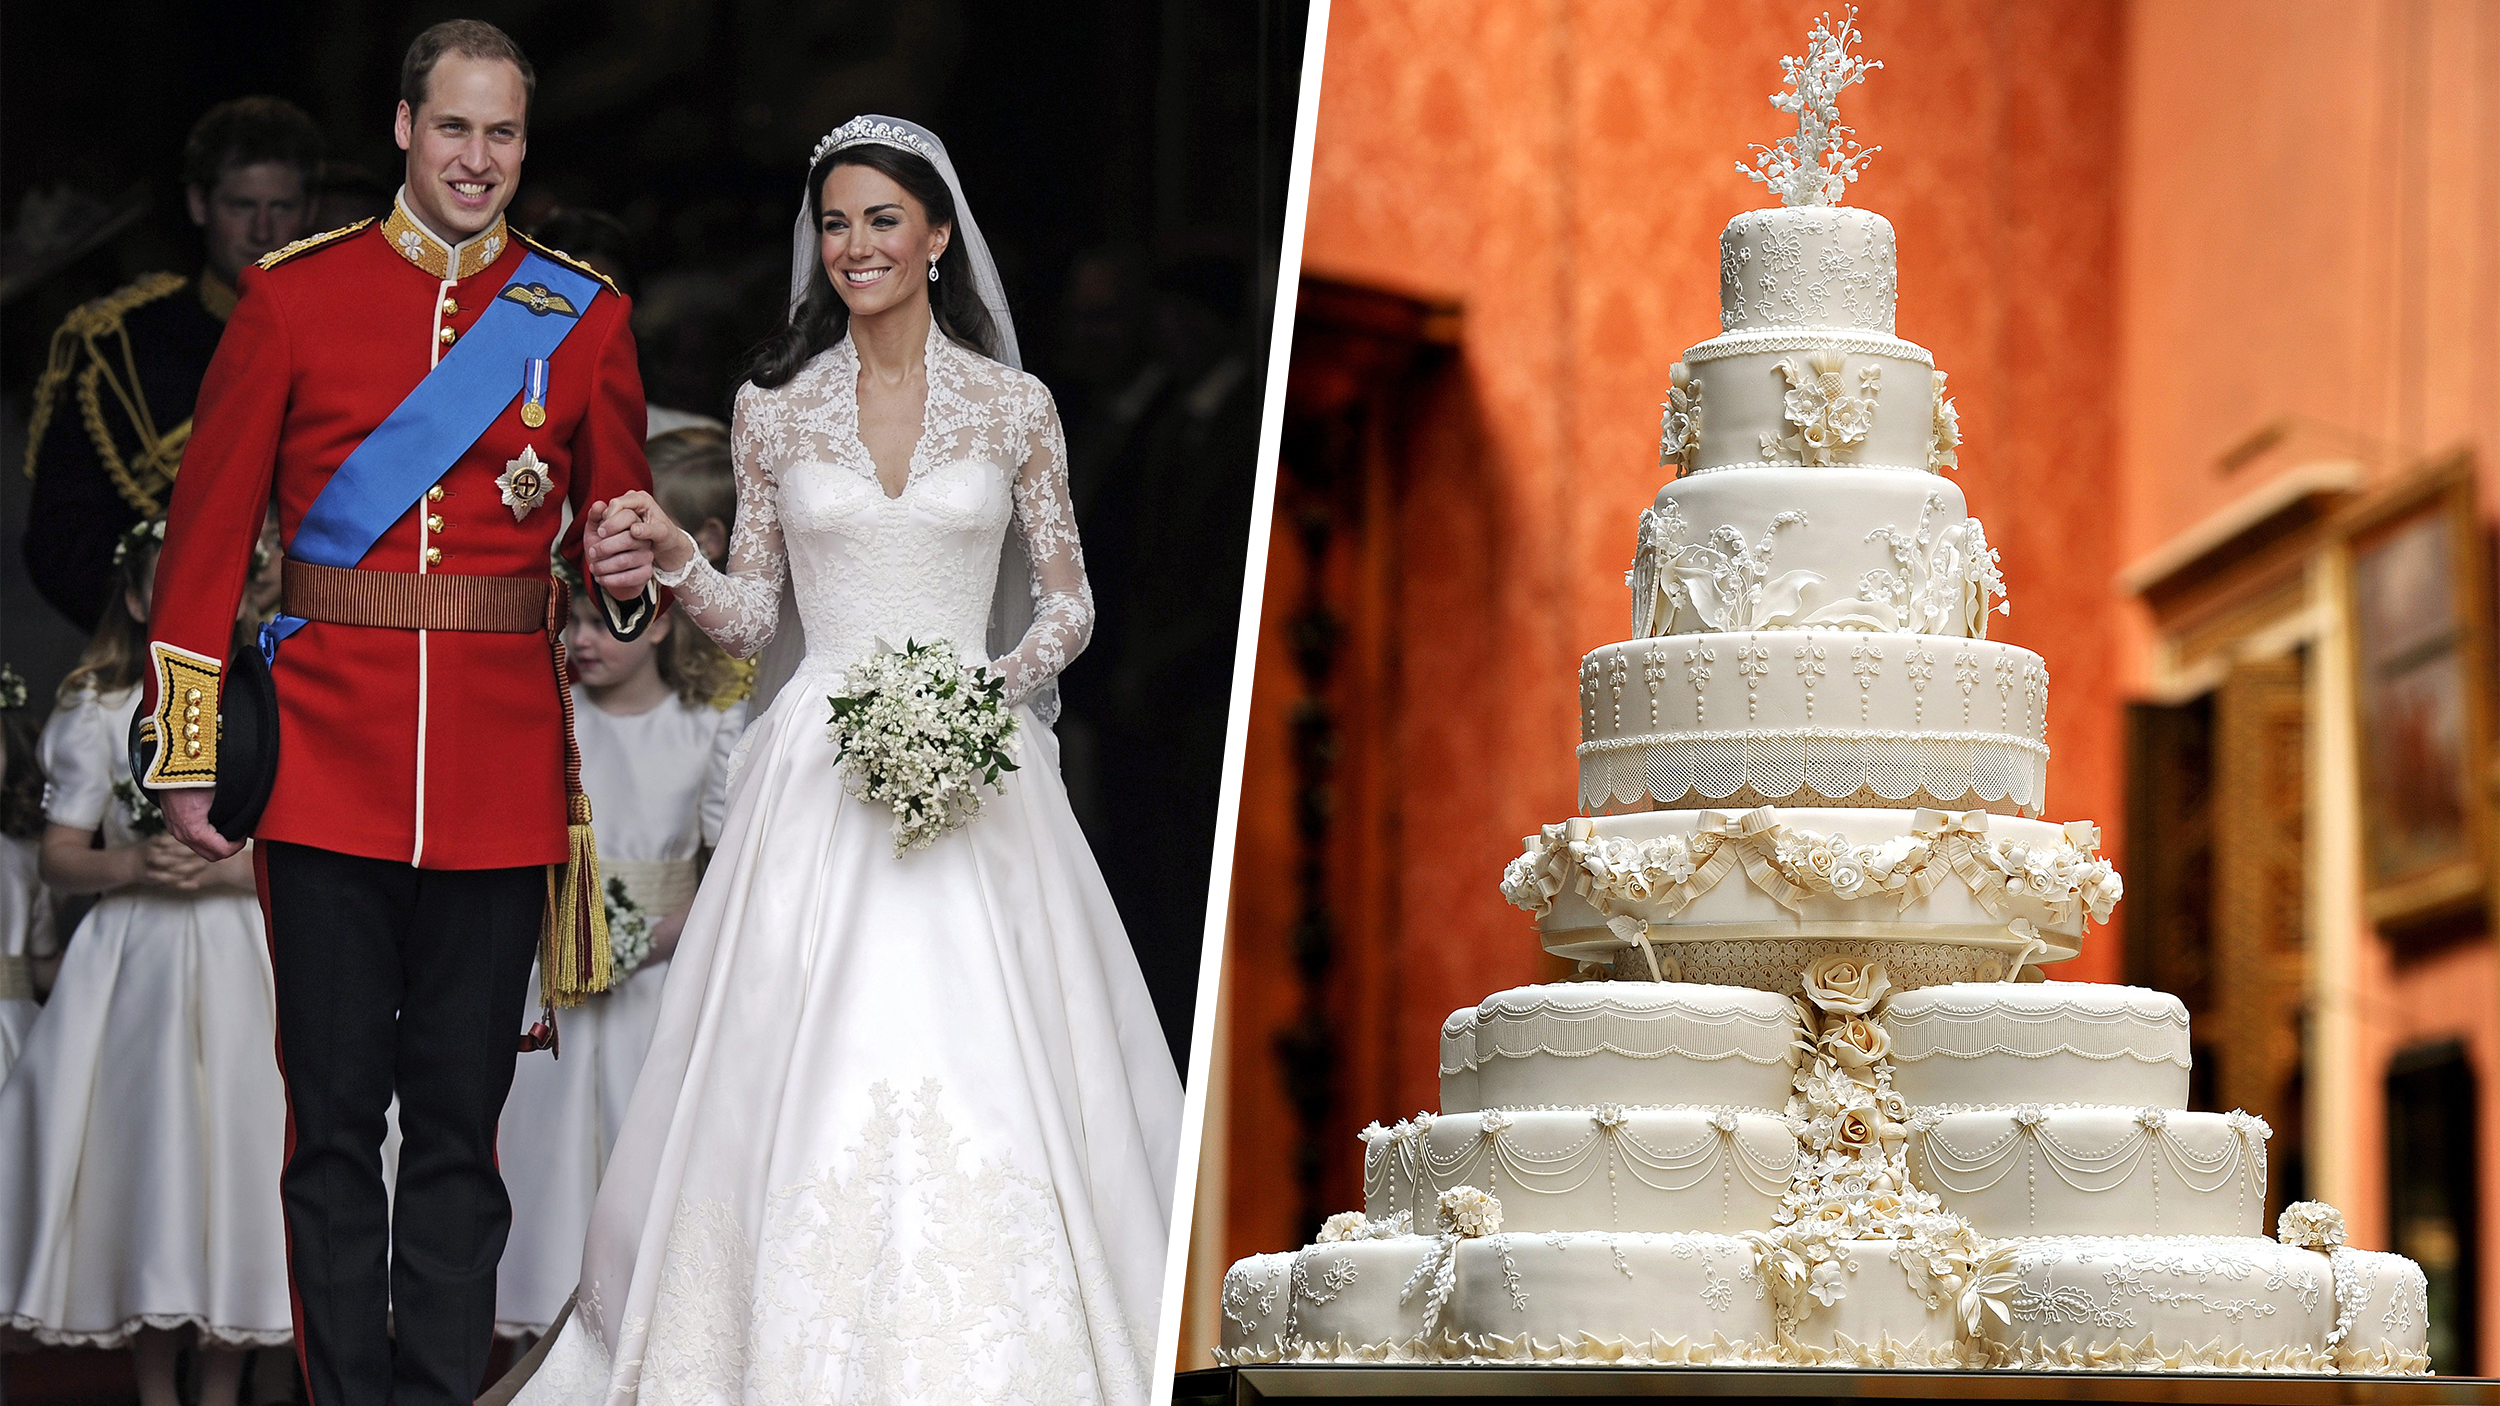 Slice of Will and Kate\'s royal wedding cake up for auction - TODAY.com